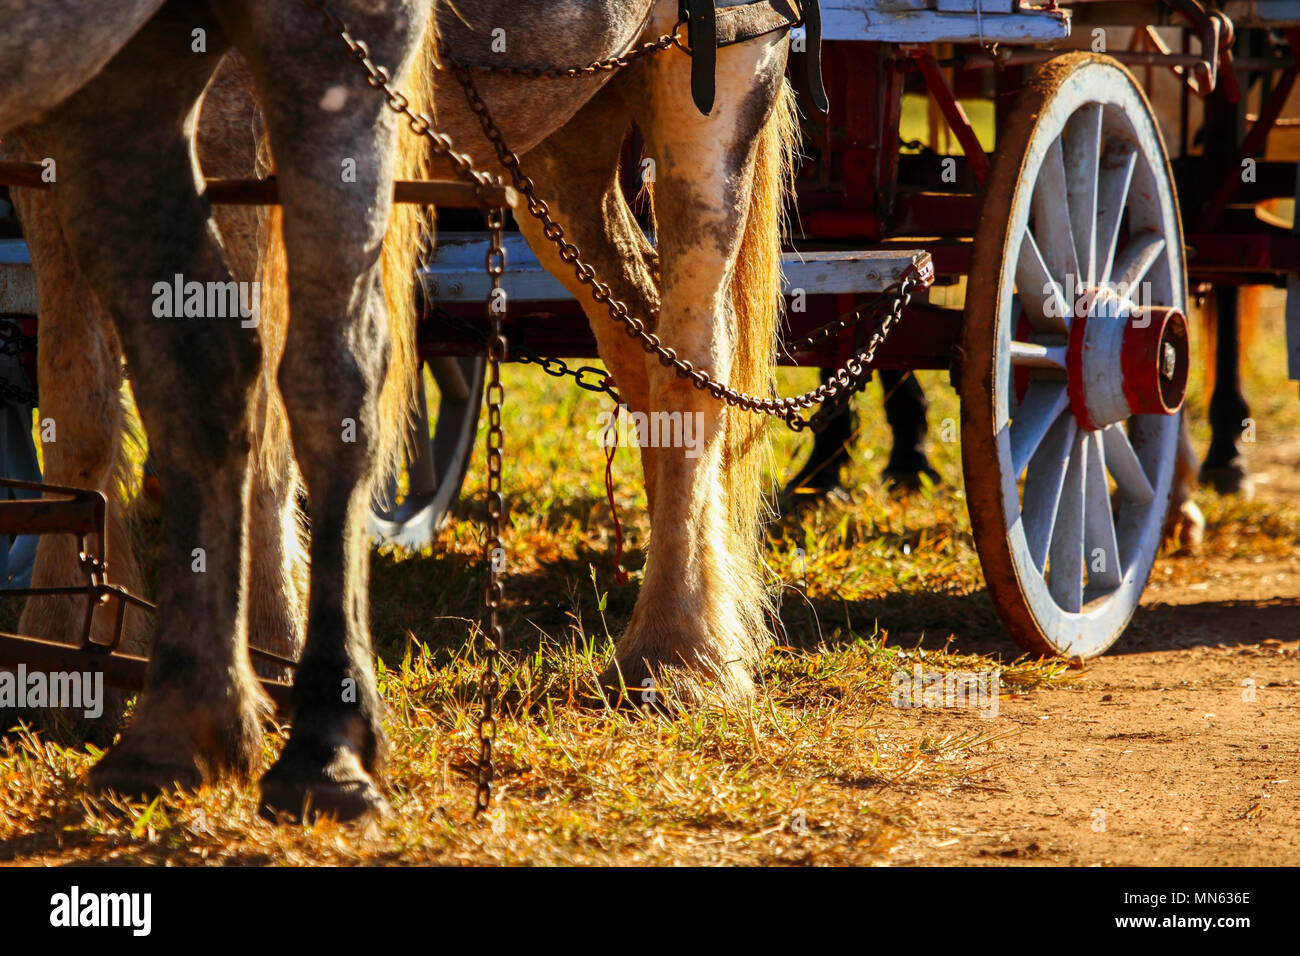 Closeup of harnessed horses legs and hooves pulling a wagon. - Stock Image